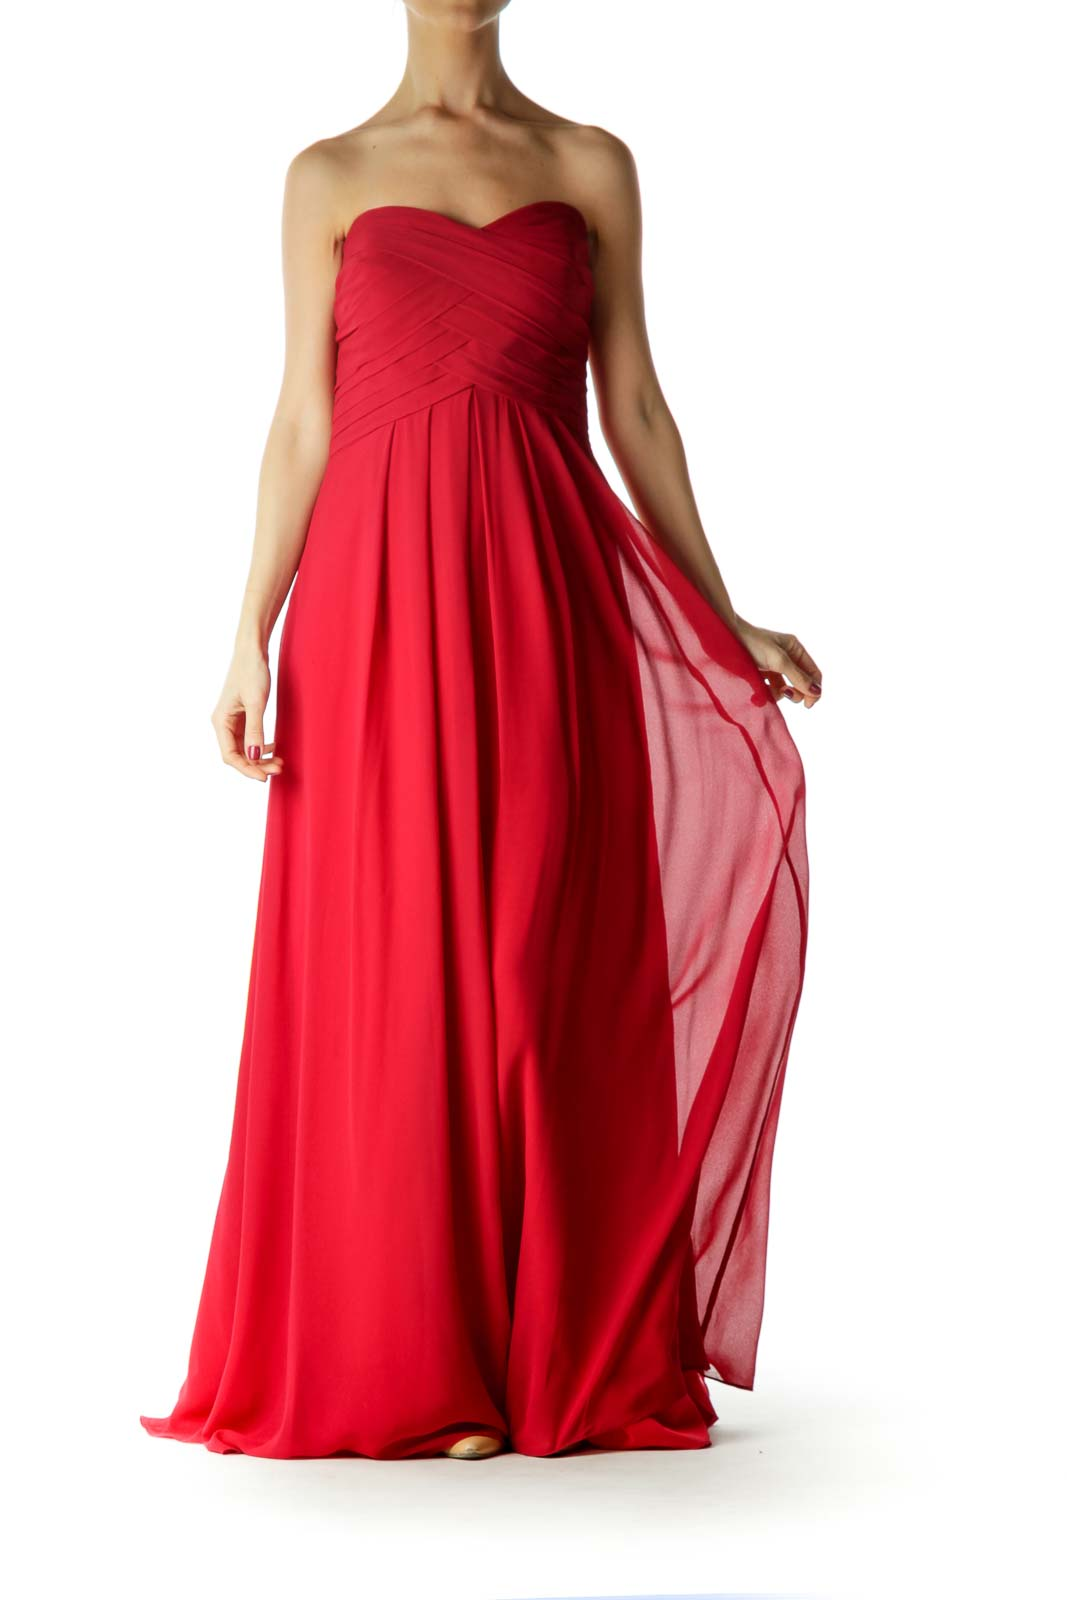 Red Sweetheart Neckline Evening Dress